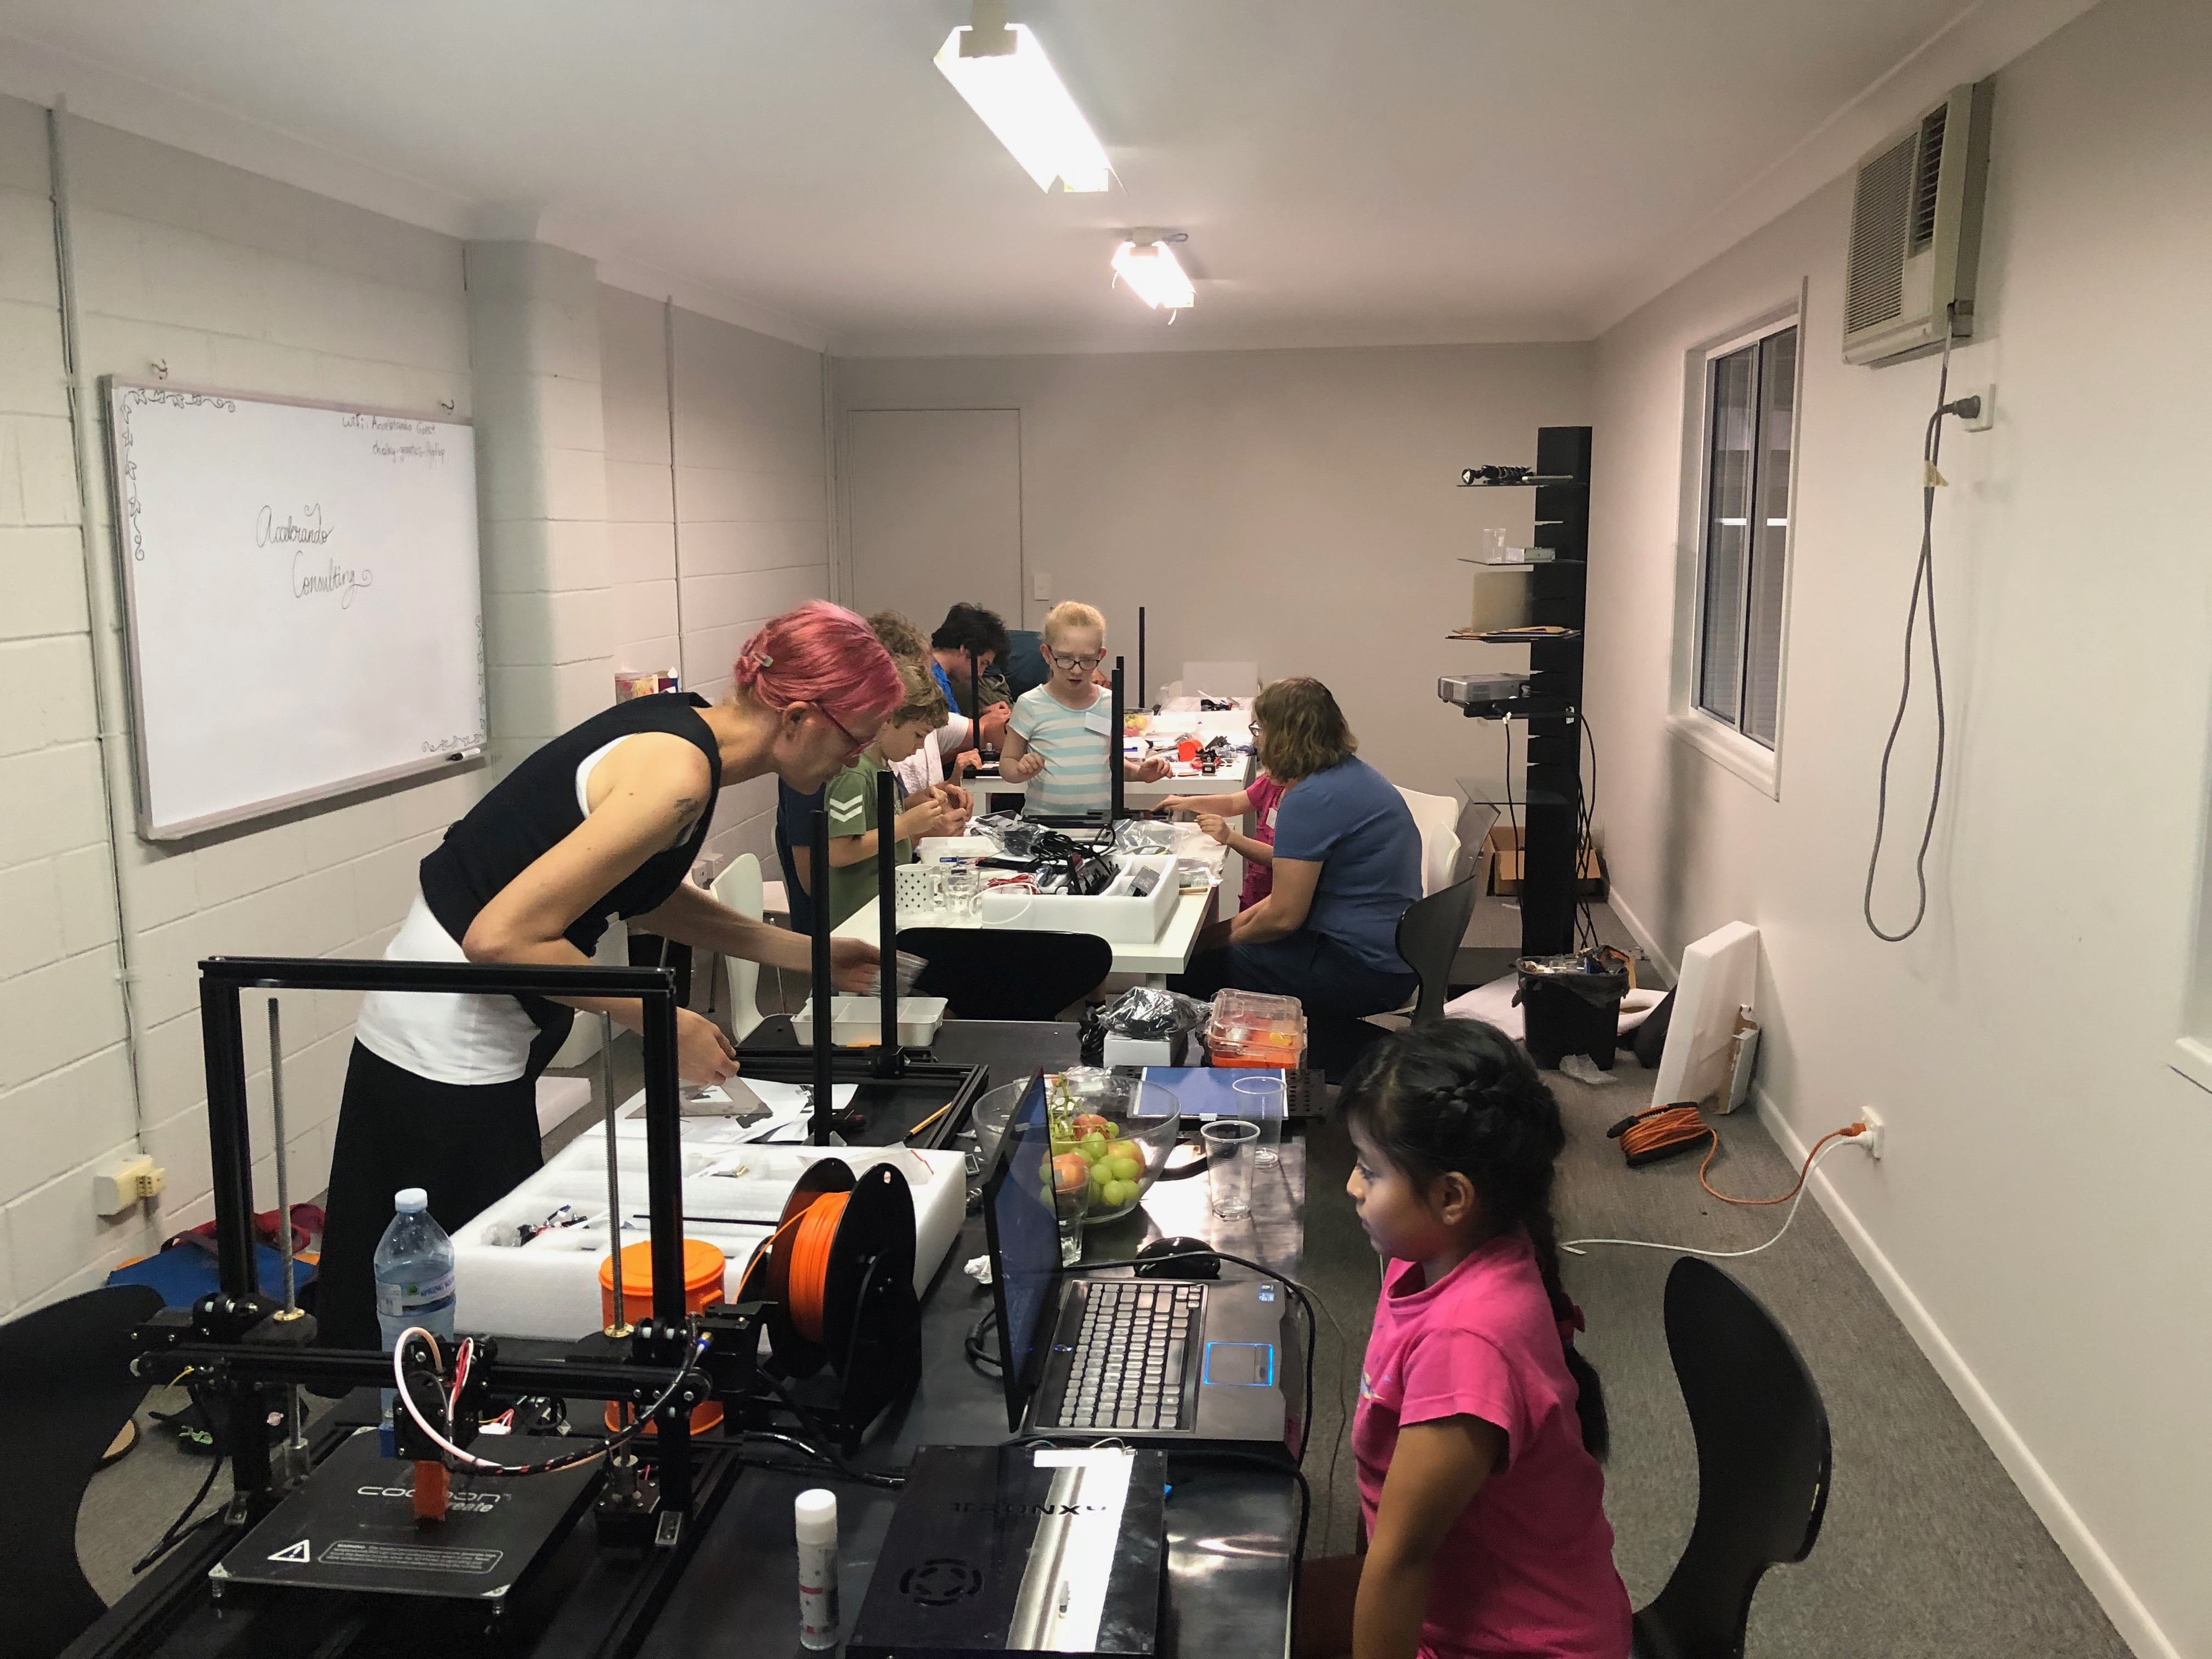 IoTBNE Build-your-own-3D-printer event